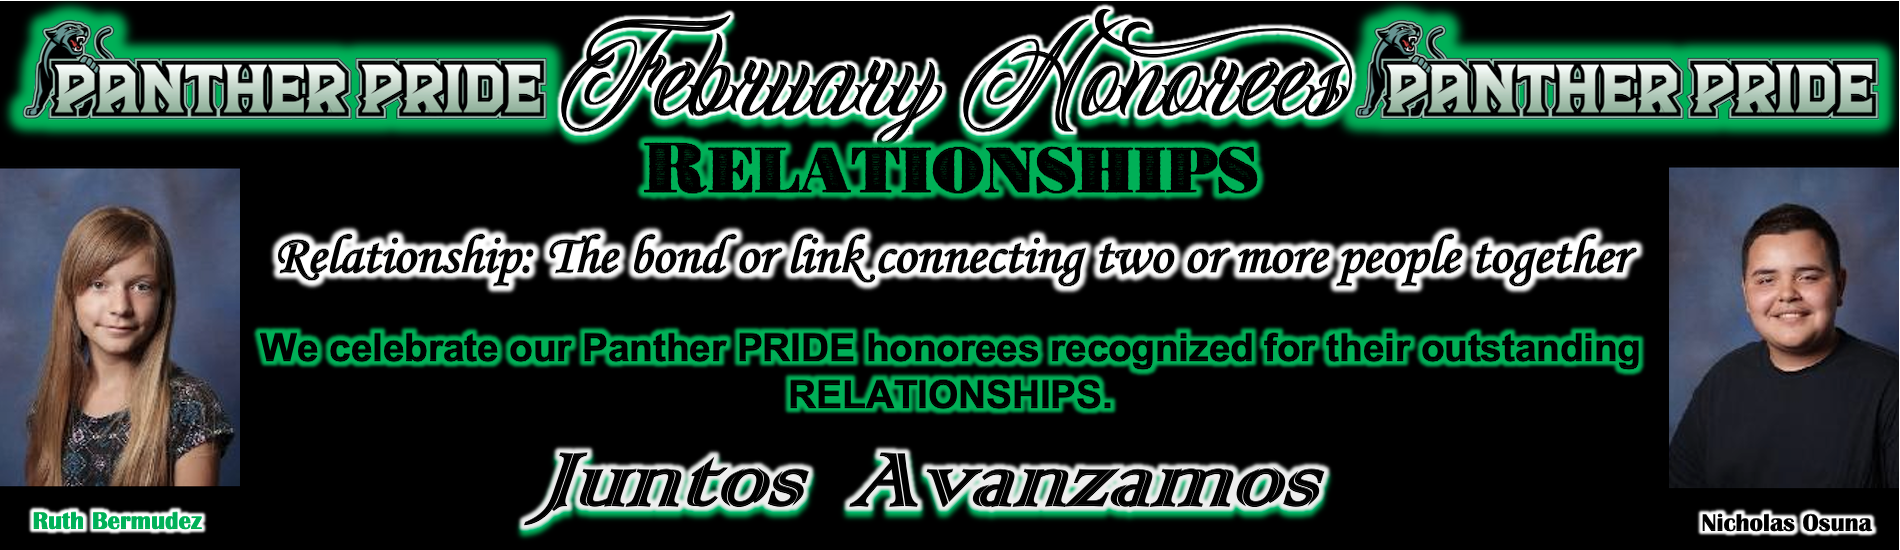 Relationships The bond or link connecting 2 or more people together. Honorees: Ruth Bermudez, Nicholas Osuna